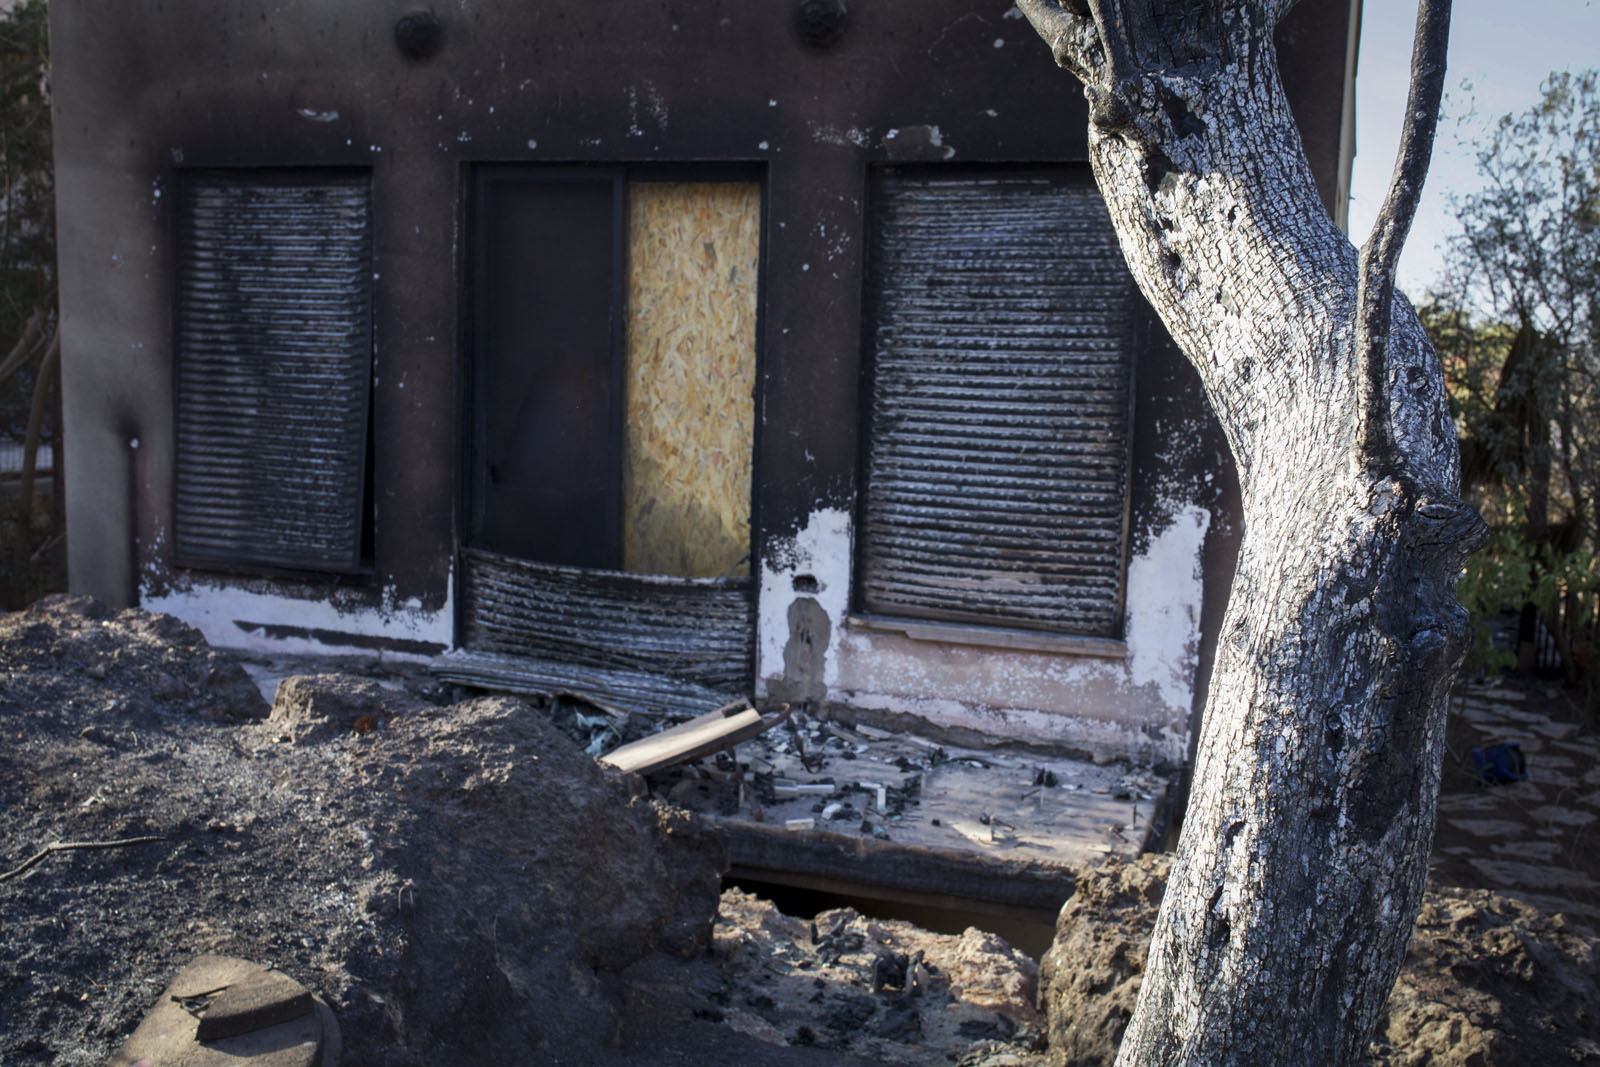 Damage caused by a in Zichron Yaakov, November 23, 2016. Photo by Doron Horowitz/Flash90